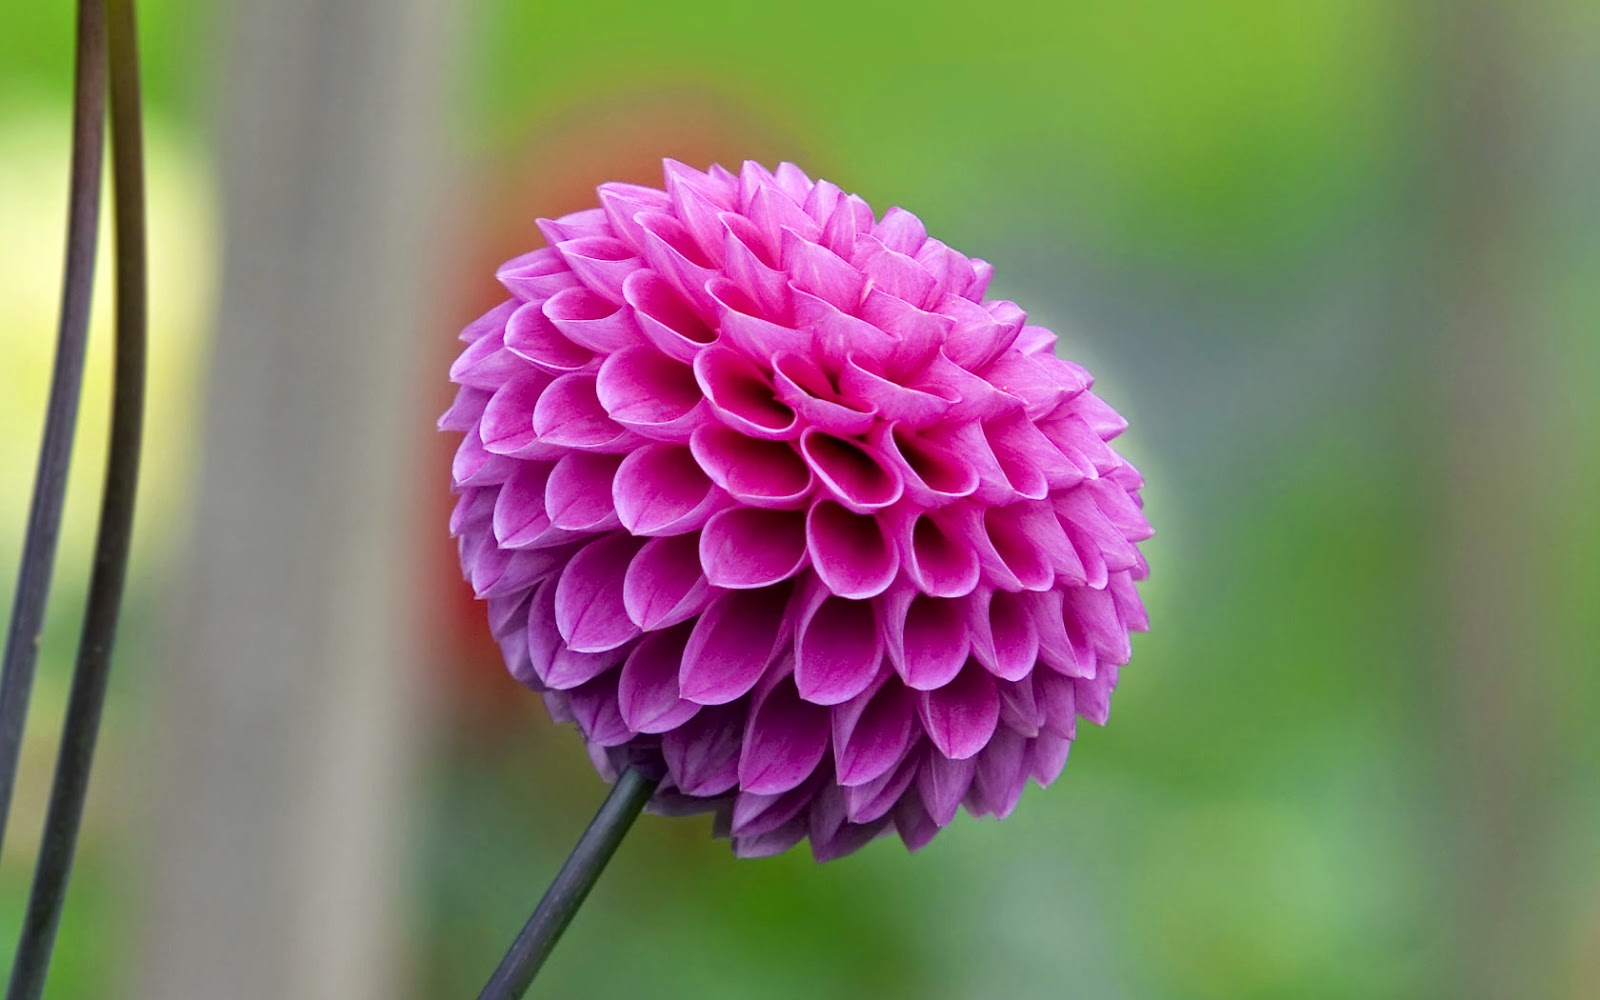 Flower photos most beautiful flowers in the world dahlia the most popular colors of dahlia are pink red light orange and white they are undoubtedly one of the most beautiful flowers in the world izmirmasajfo